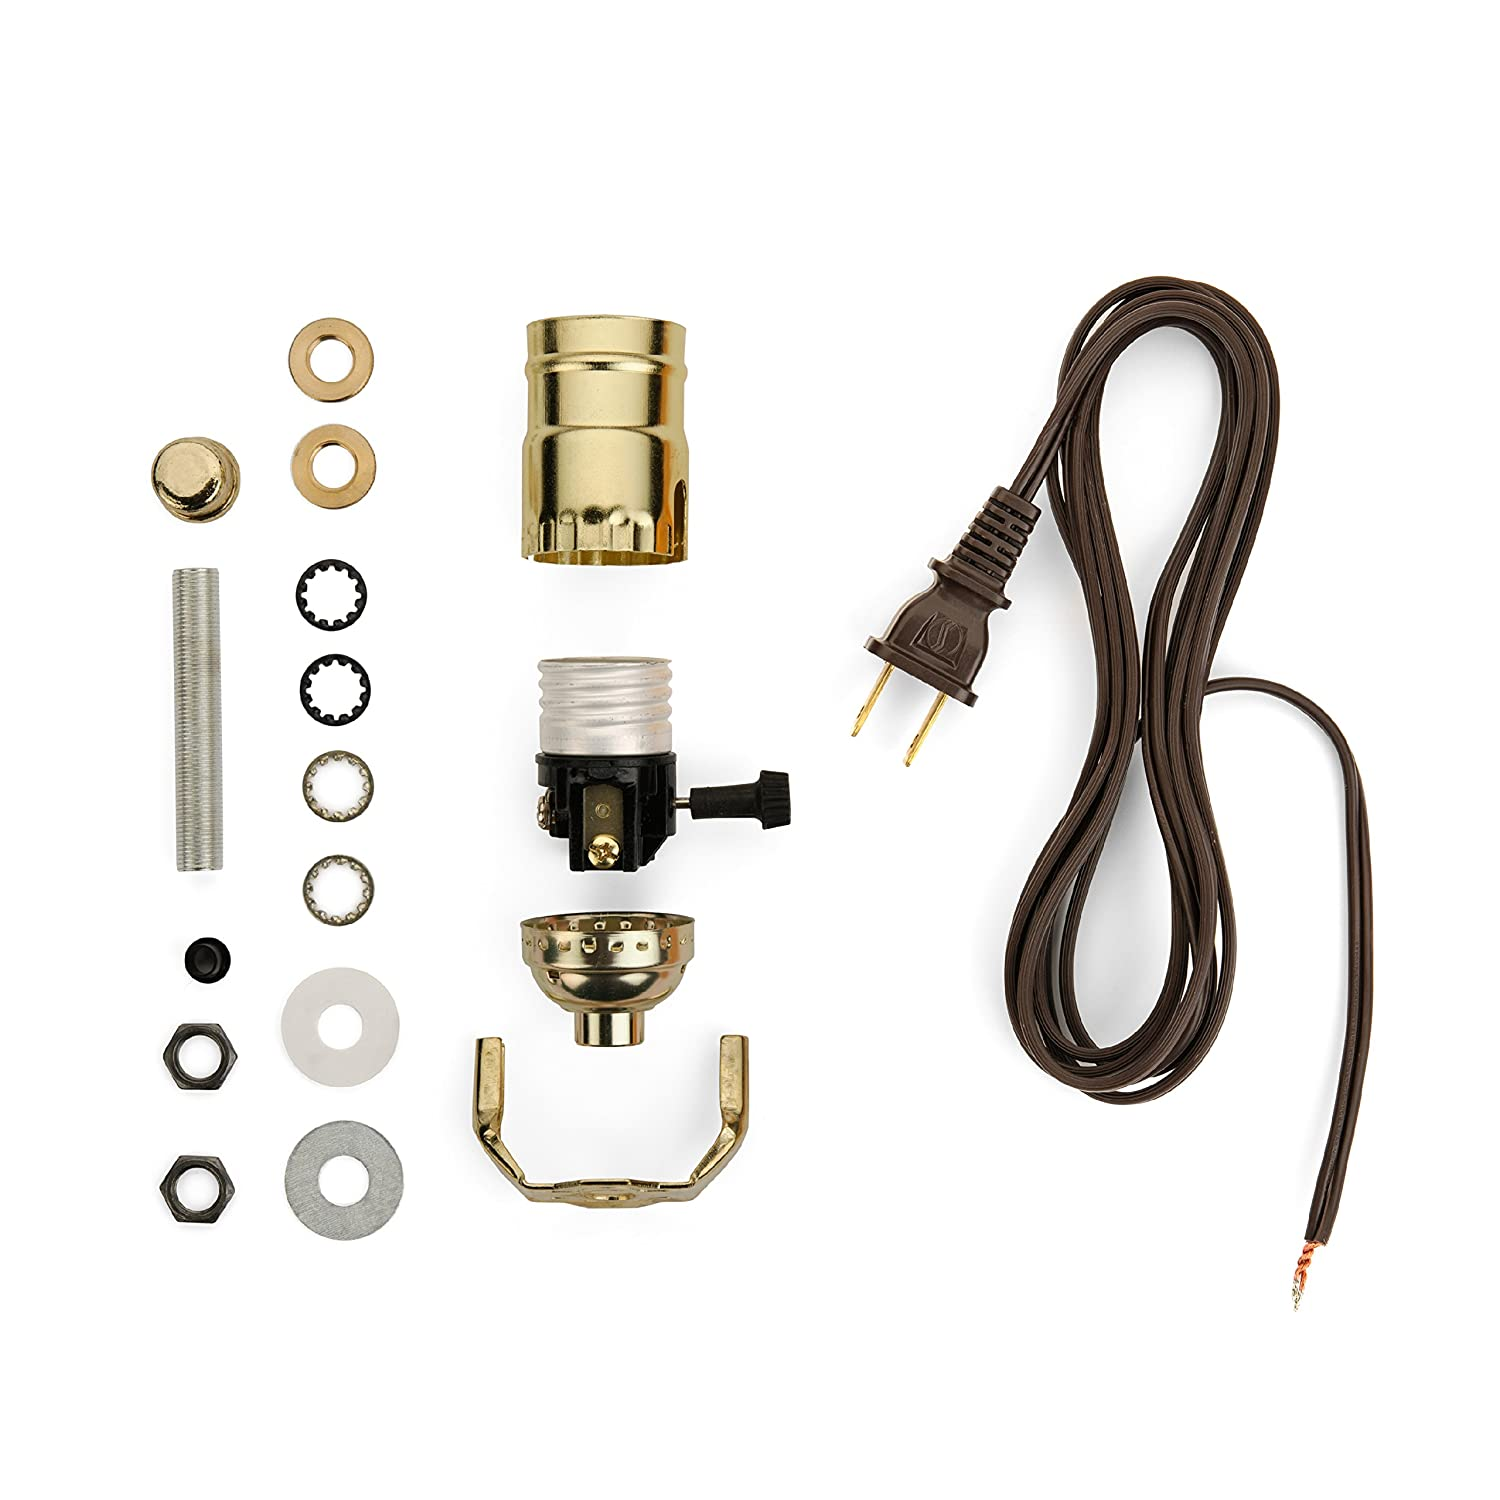 Lamp Making Kit Electrical Wiring To Make Or Refurbish Lamps Diy Chandelier Diagram With Brass Plated Socket And 12 Feet Brown Wire Cord